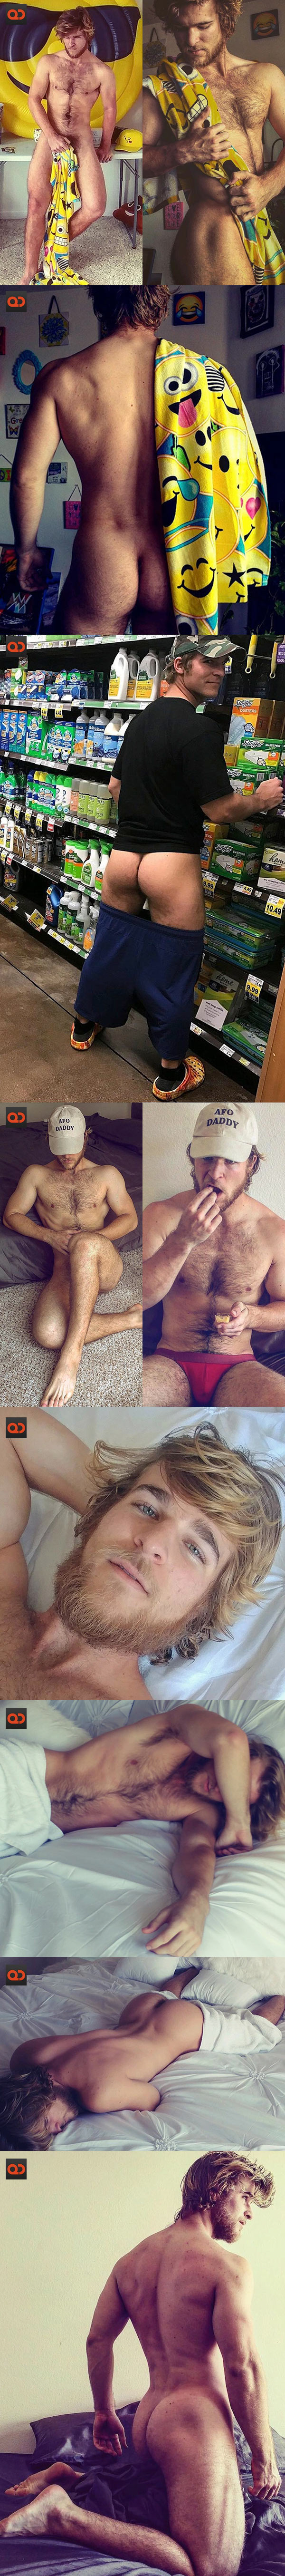 "QC Crush: Alex Cypriano - Model And The Self-Proclaimed ""Hairiest Man On Instagram!"""